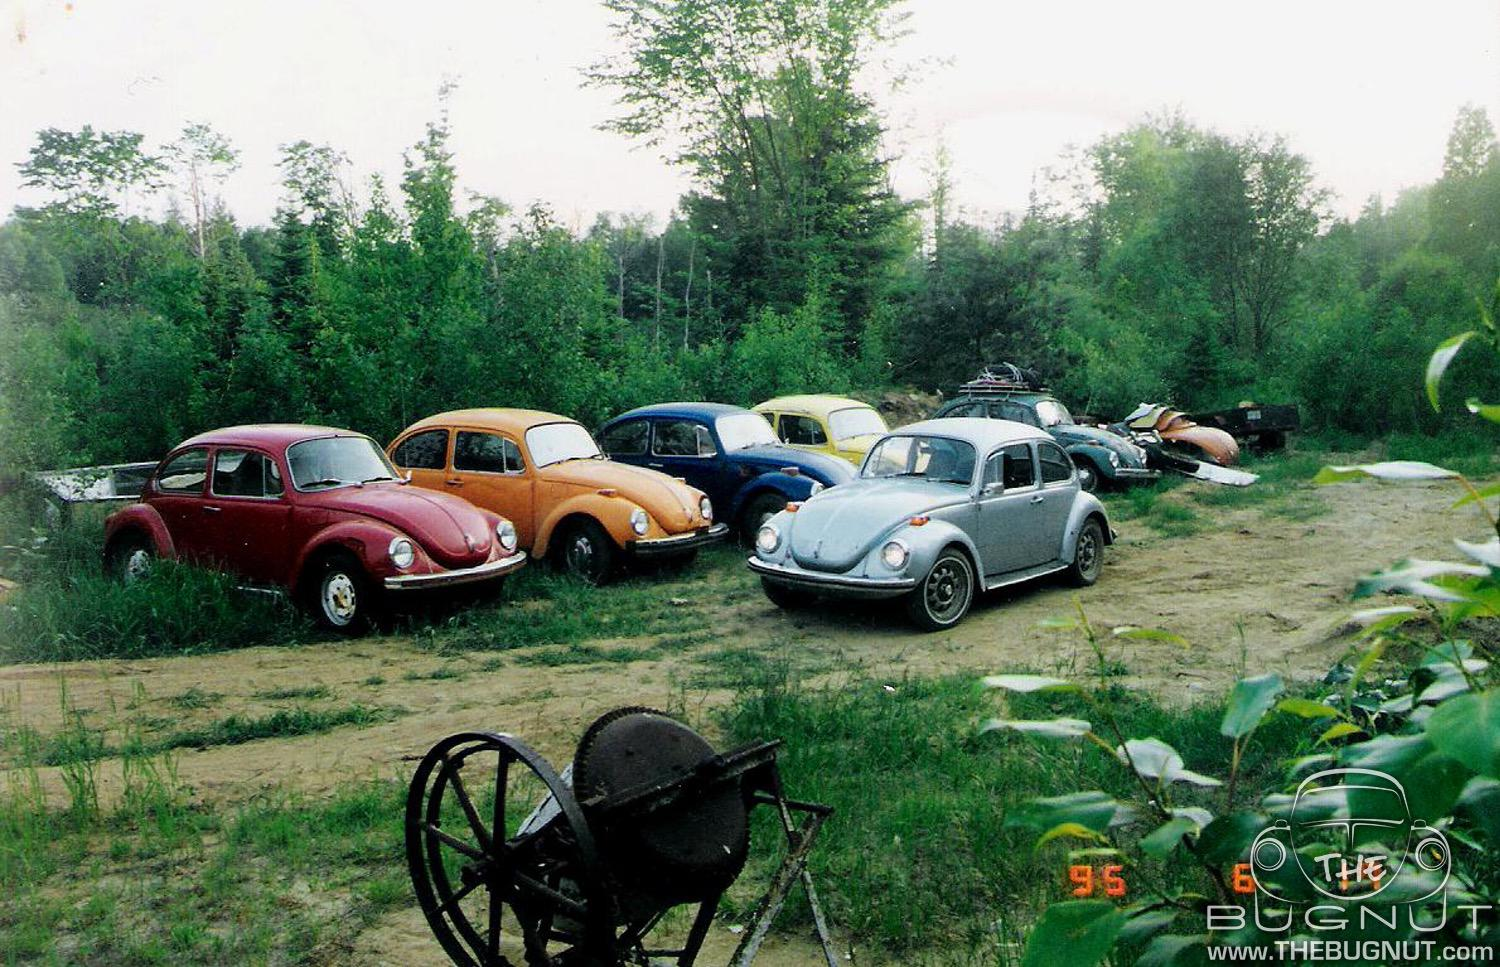 Classic Air-Cooled VW Beetles waiting to be restored